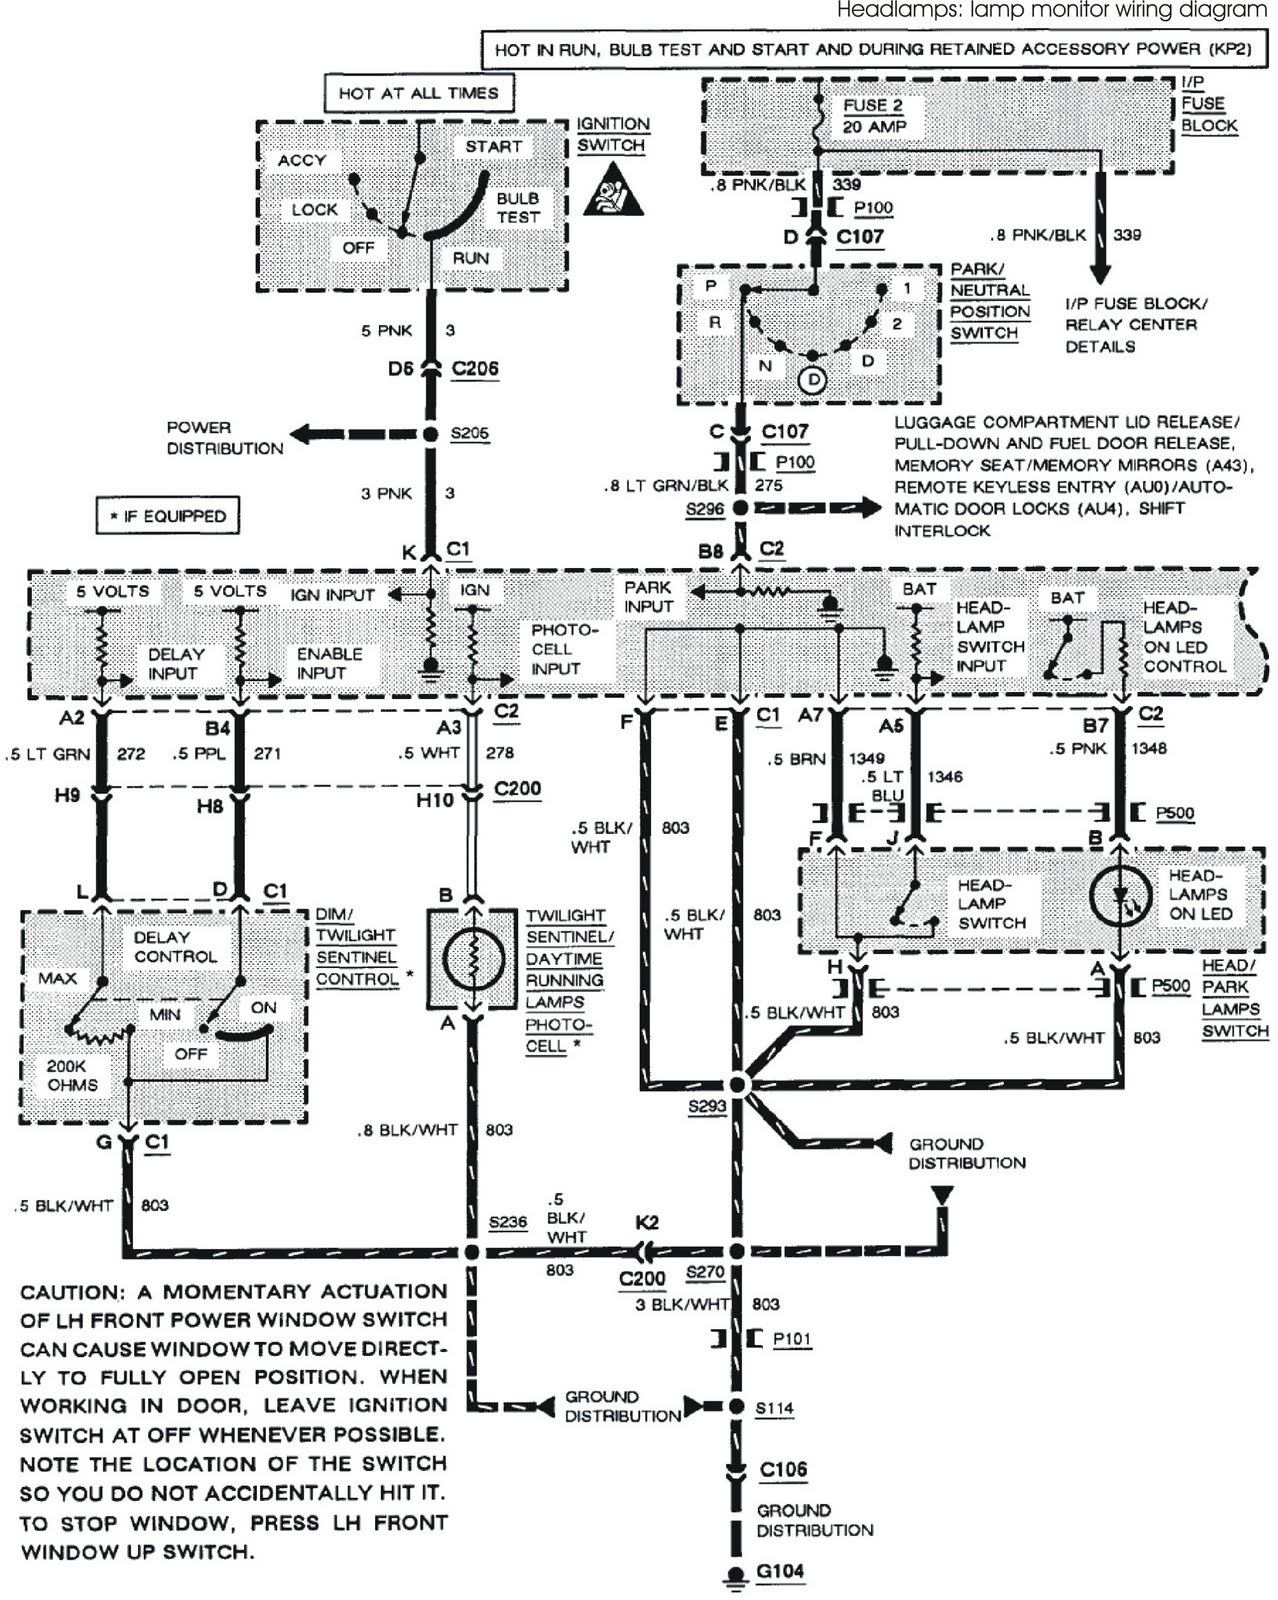 Vga To Av Cable Wiring Diagram. Wiring. Wiring Diagrams Instructions